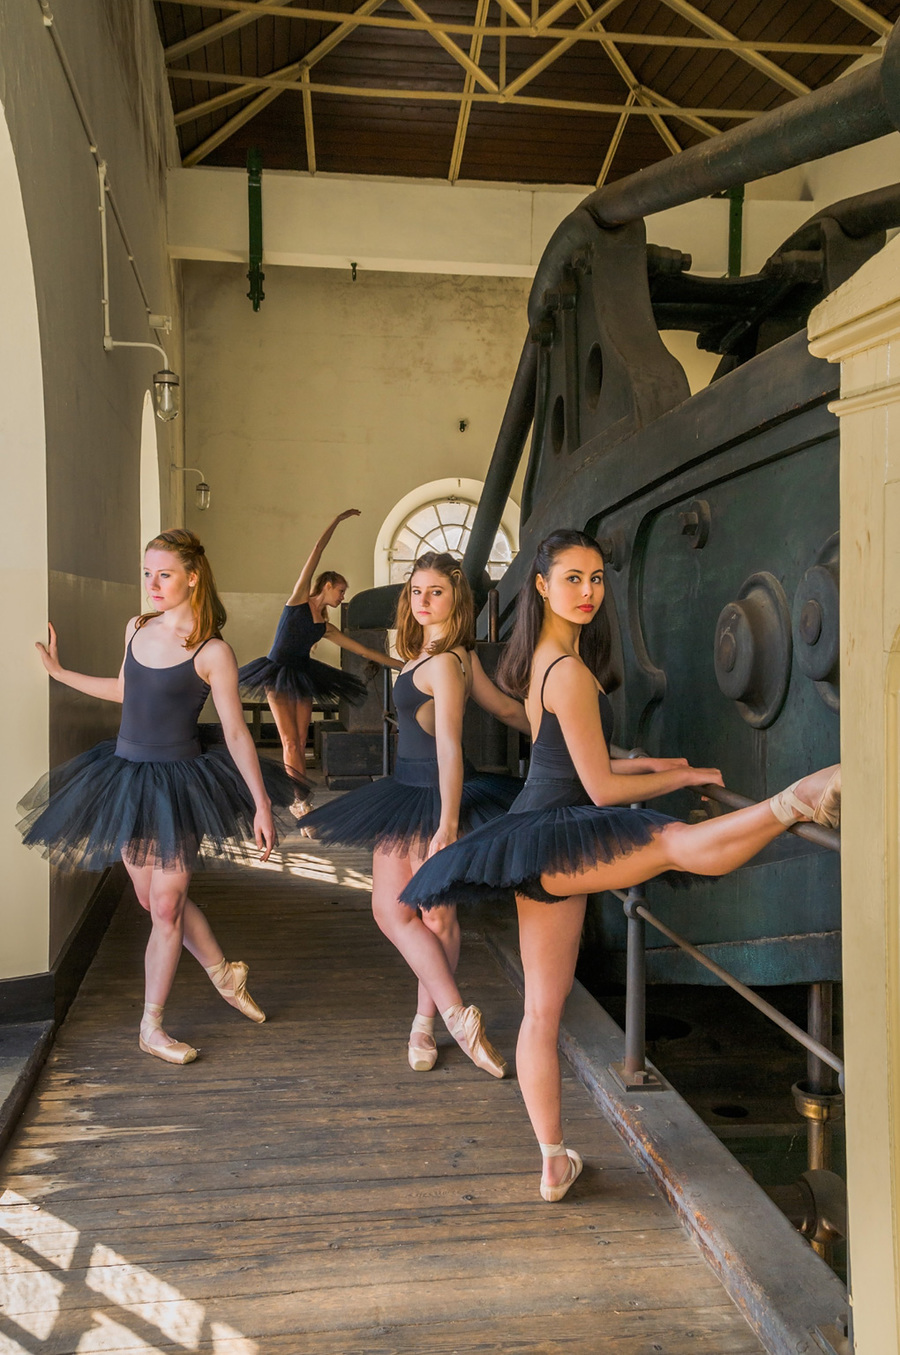 Rambert School of Ballet at Kew Bridge 34 / Photography by Ian Cartwright / Uploaded 29th April 2013 @ 05:17 PM